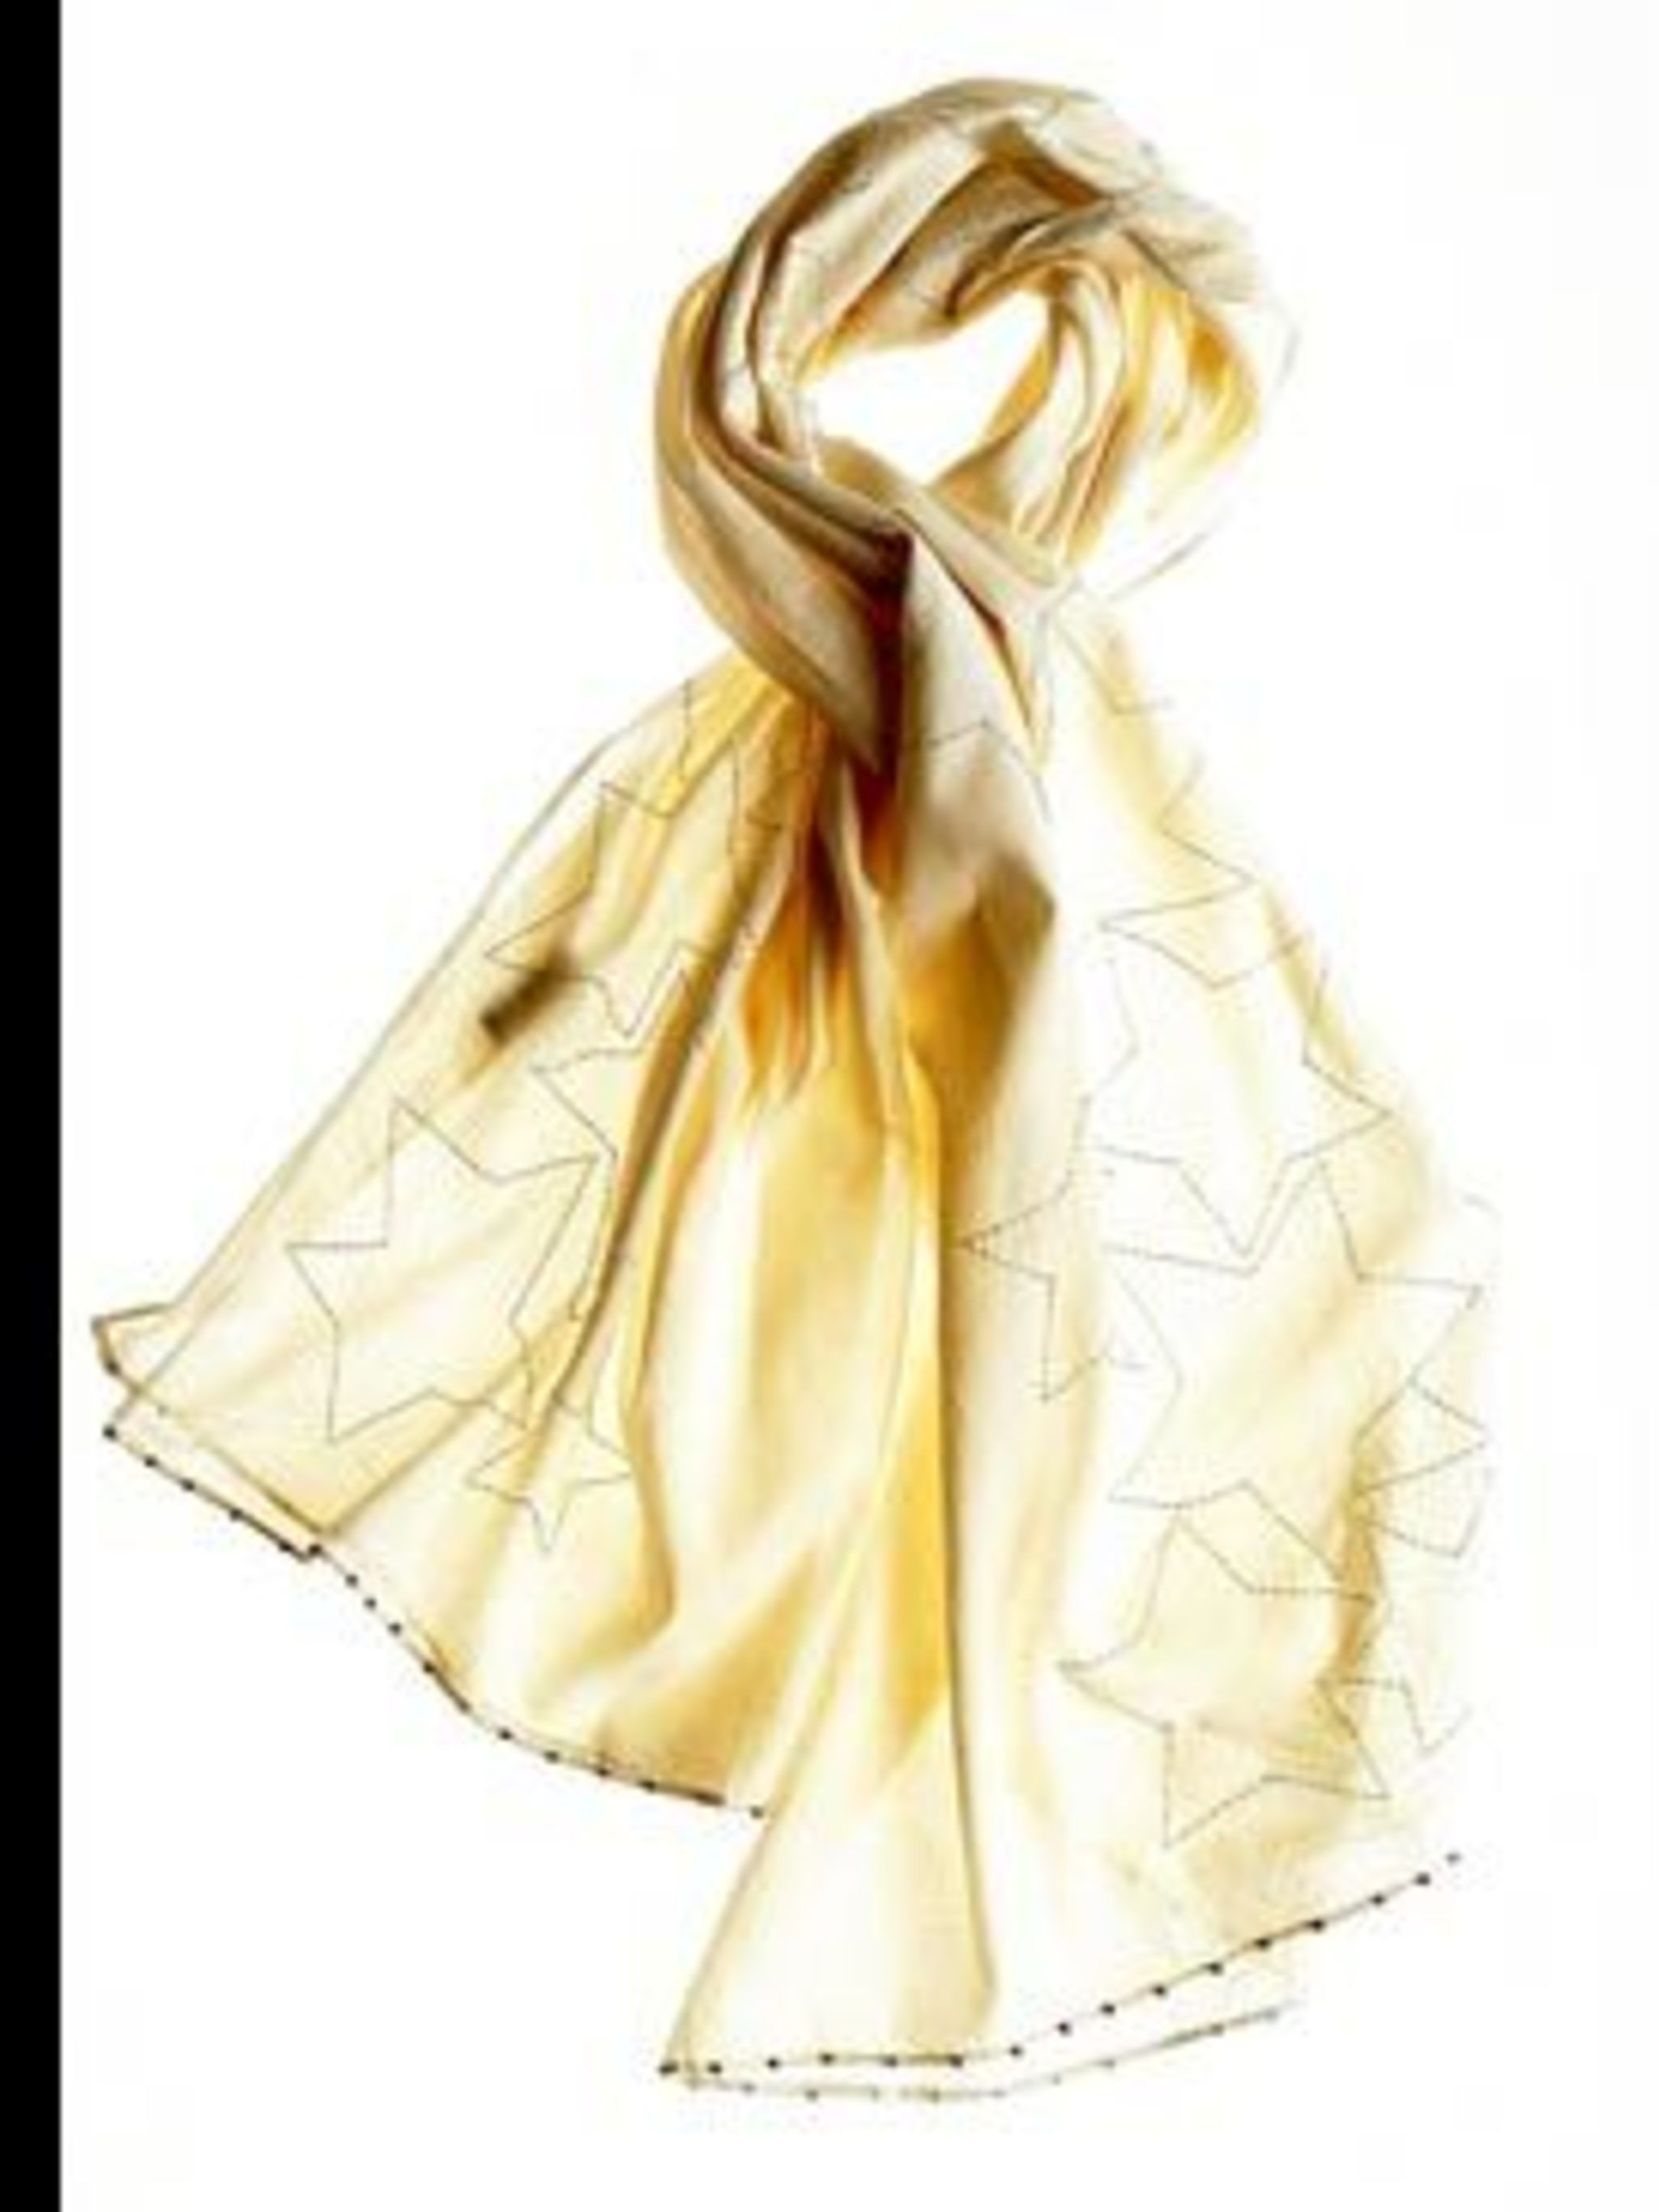 <p>Kara Pareo scarf, £61, by Antik Batik. For stockist details call 0845 094 4012</p>